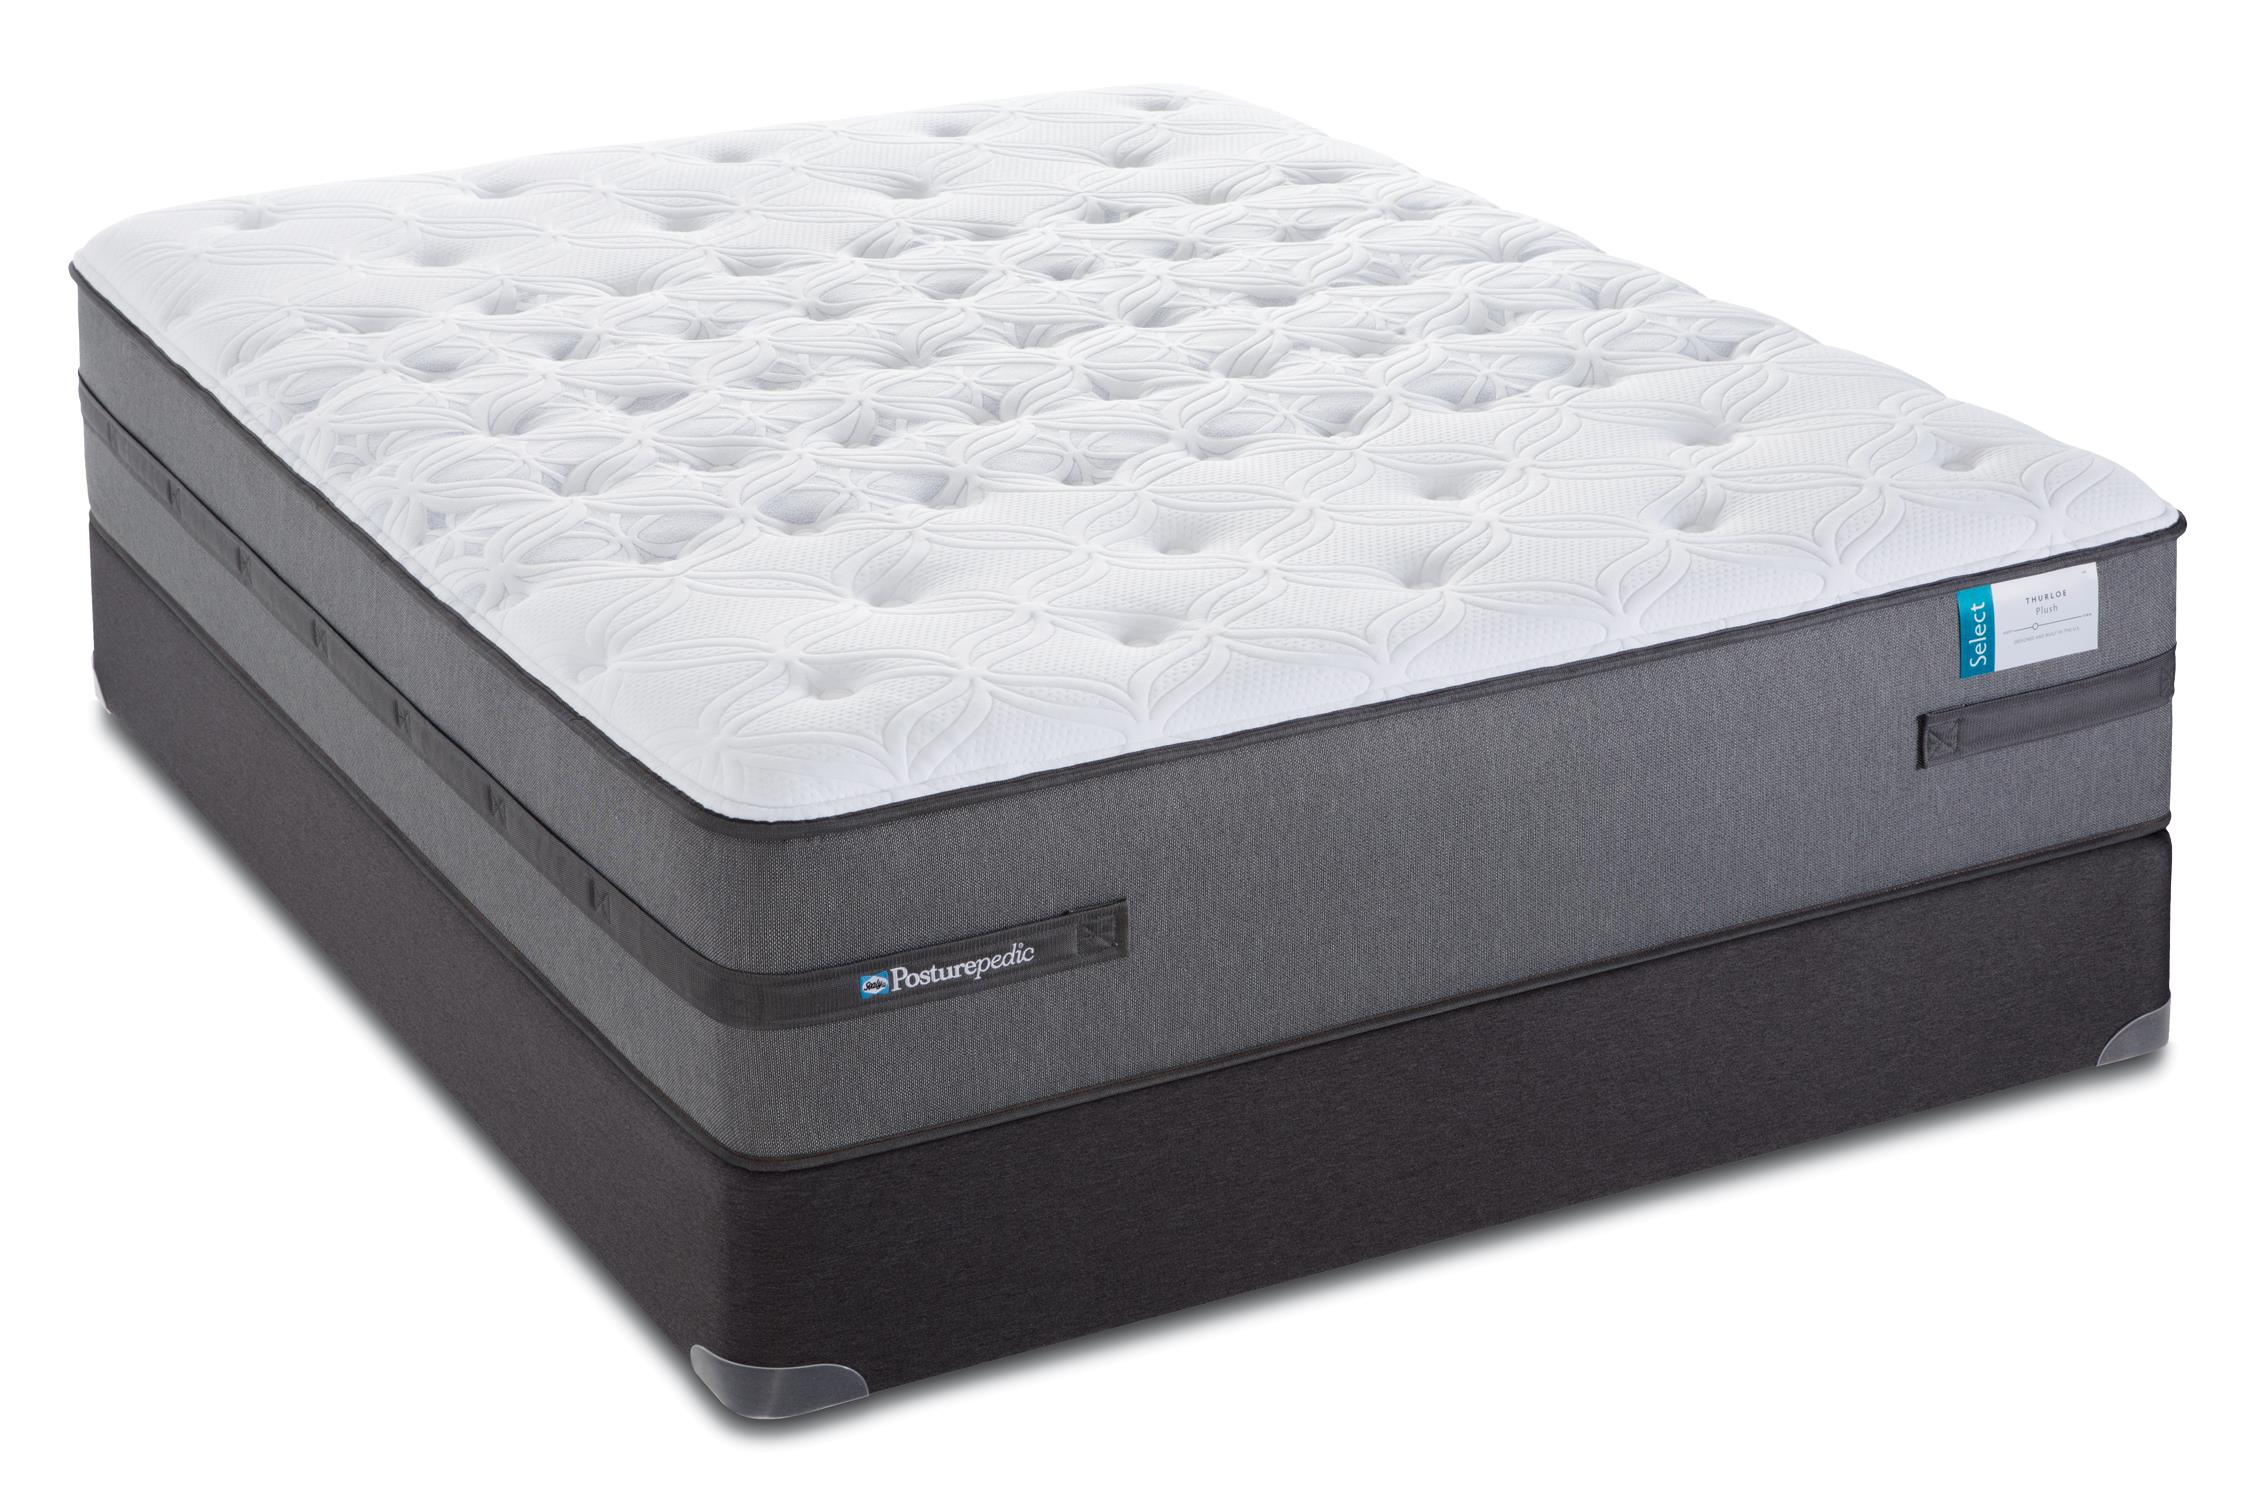 Sealy Posturepedic Chair Sealy Posturepedic Select Q2 King Cushion Firm Mattress